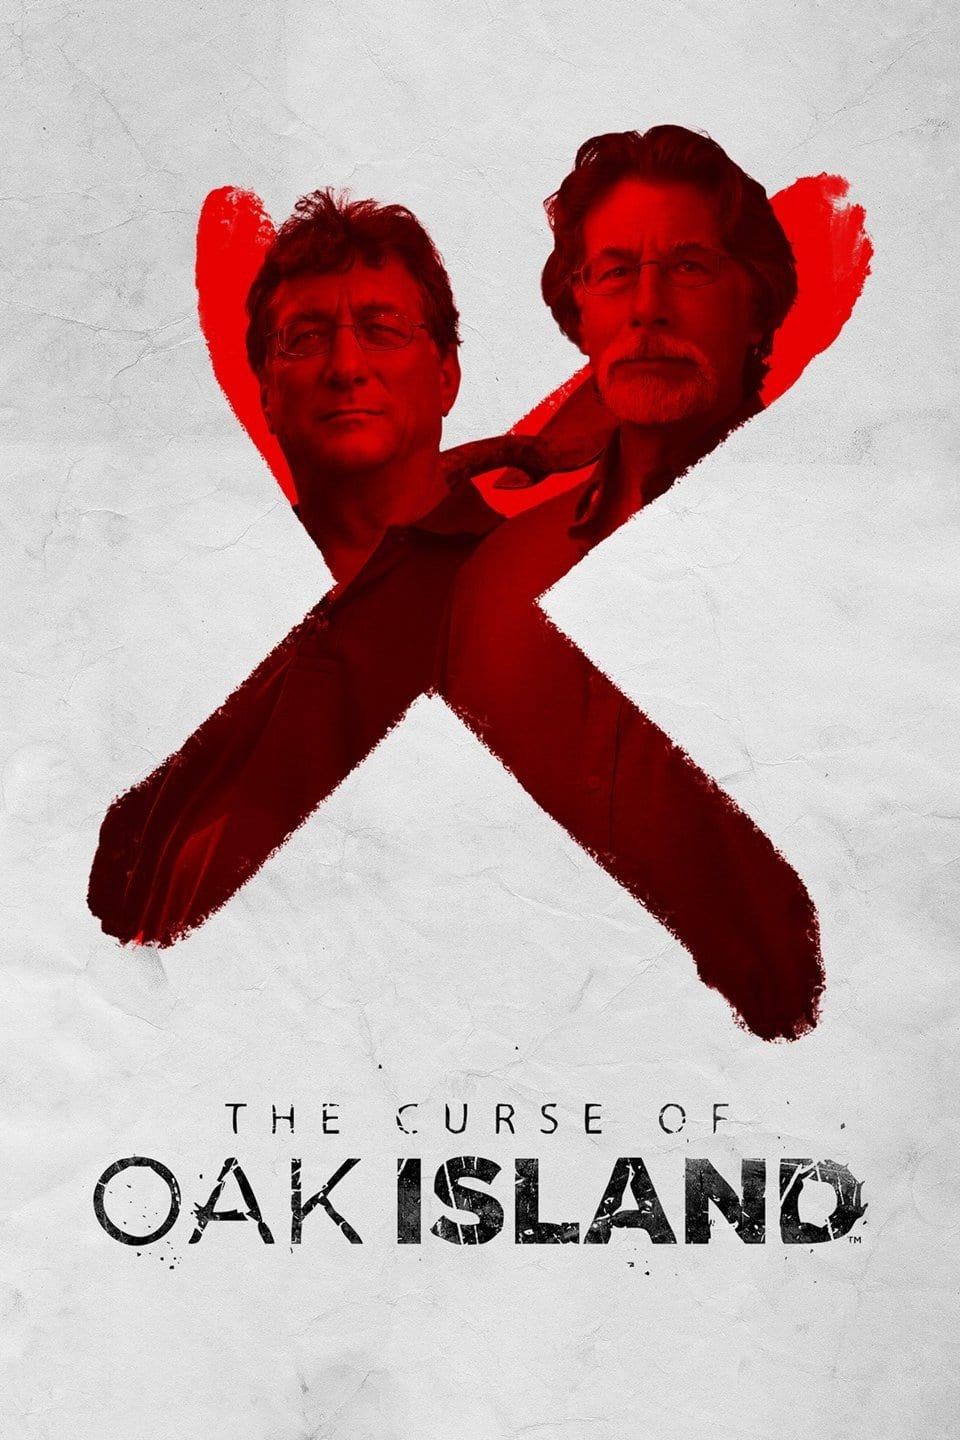 What to expect from the delayed The Curse of Oak Island